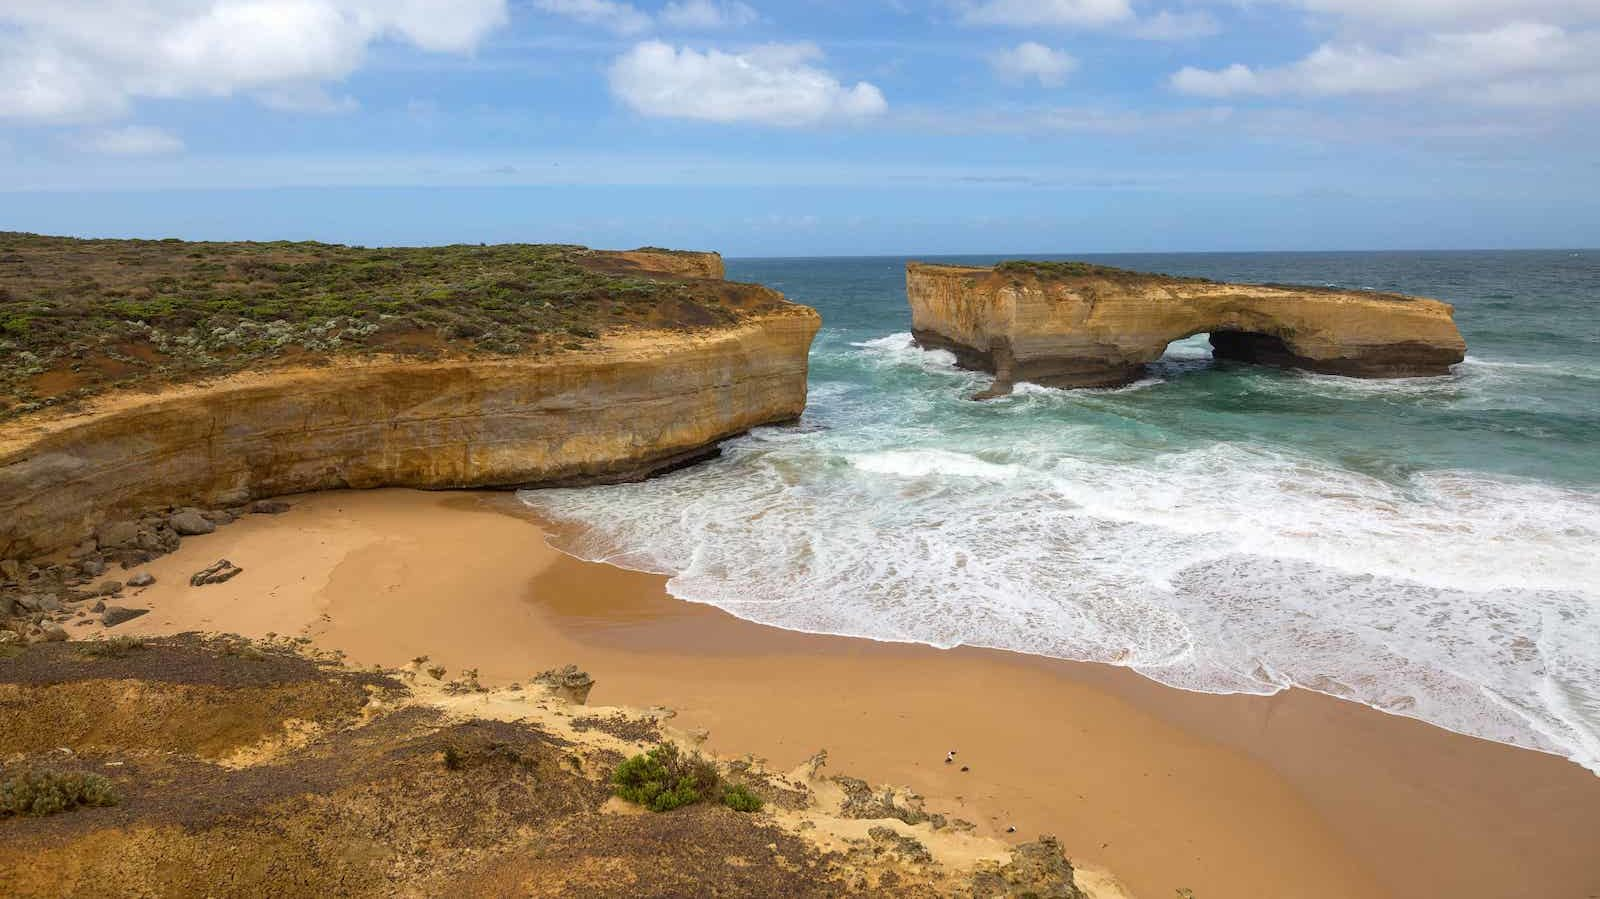 GyPSy Guide Narrated Driving Tour App for Great Ocean Road